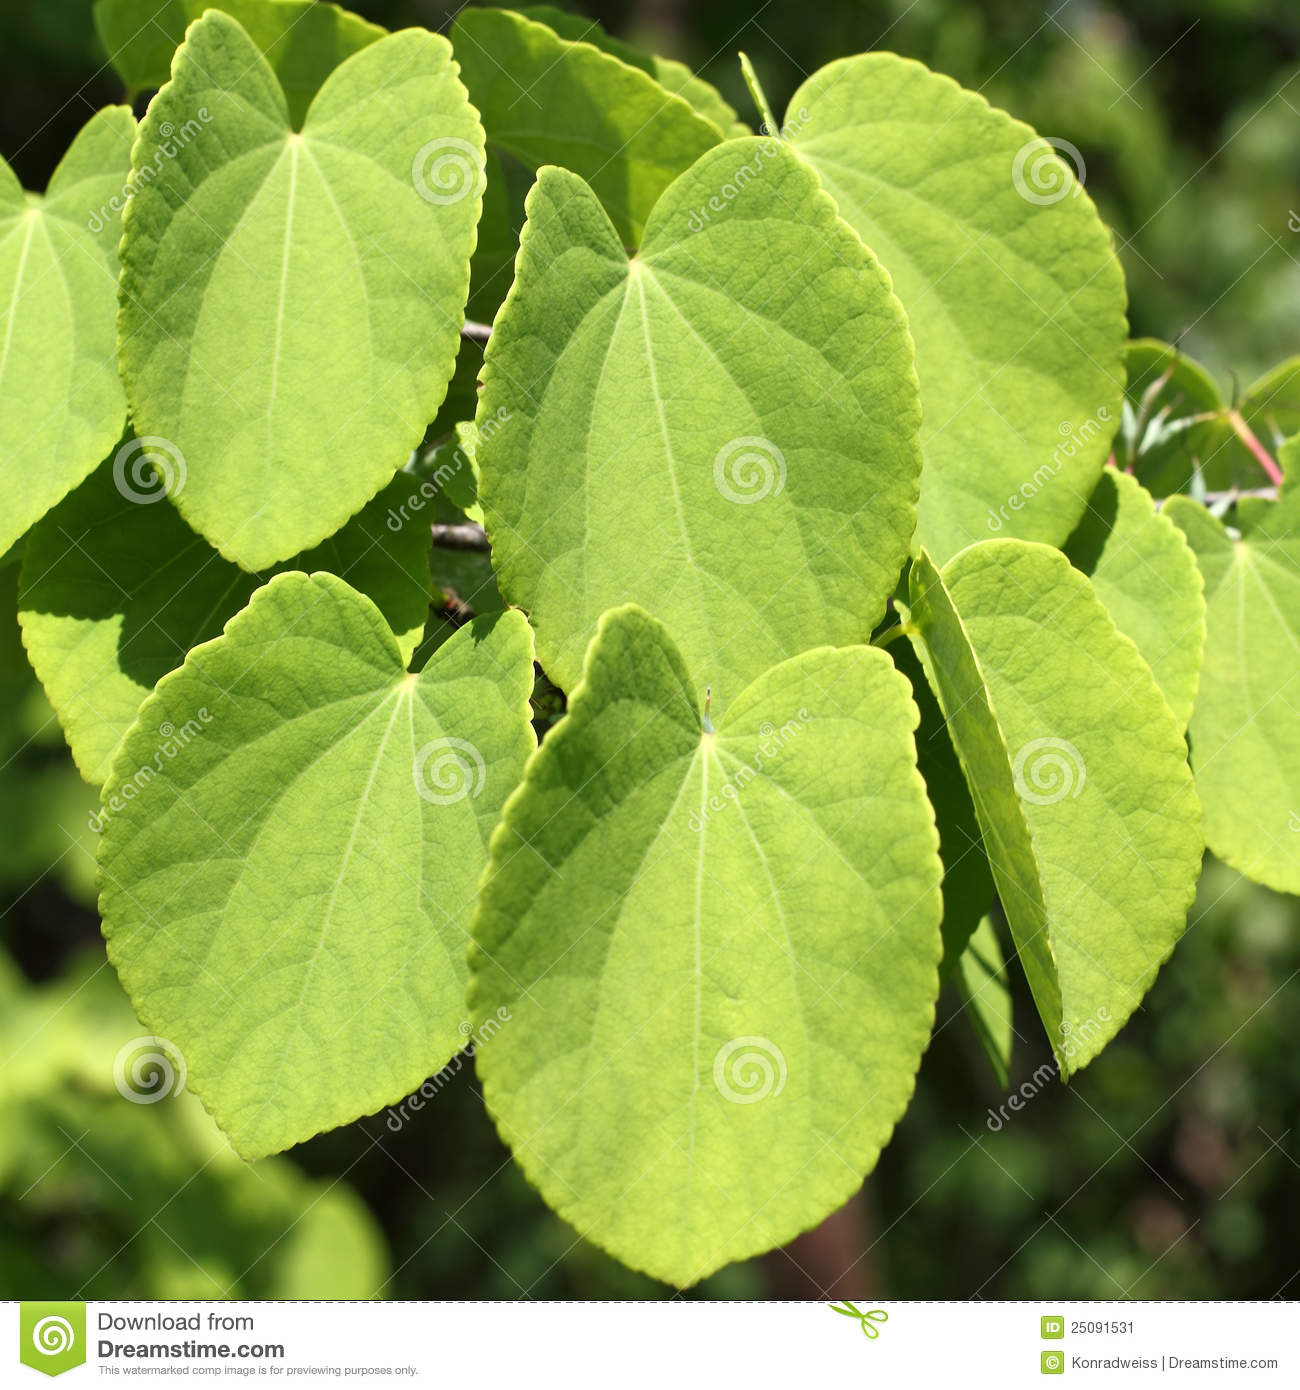 Leaves Of Katsura, Cercidiphyllum Japonicum Stock Image.